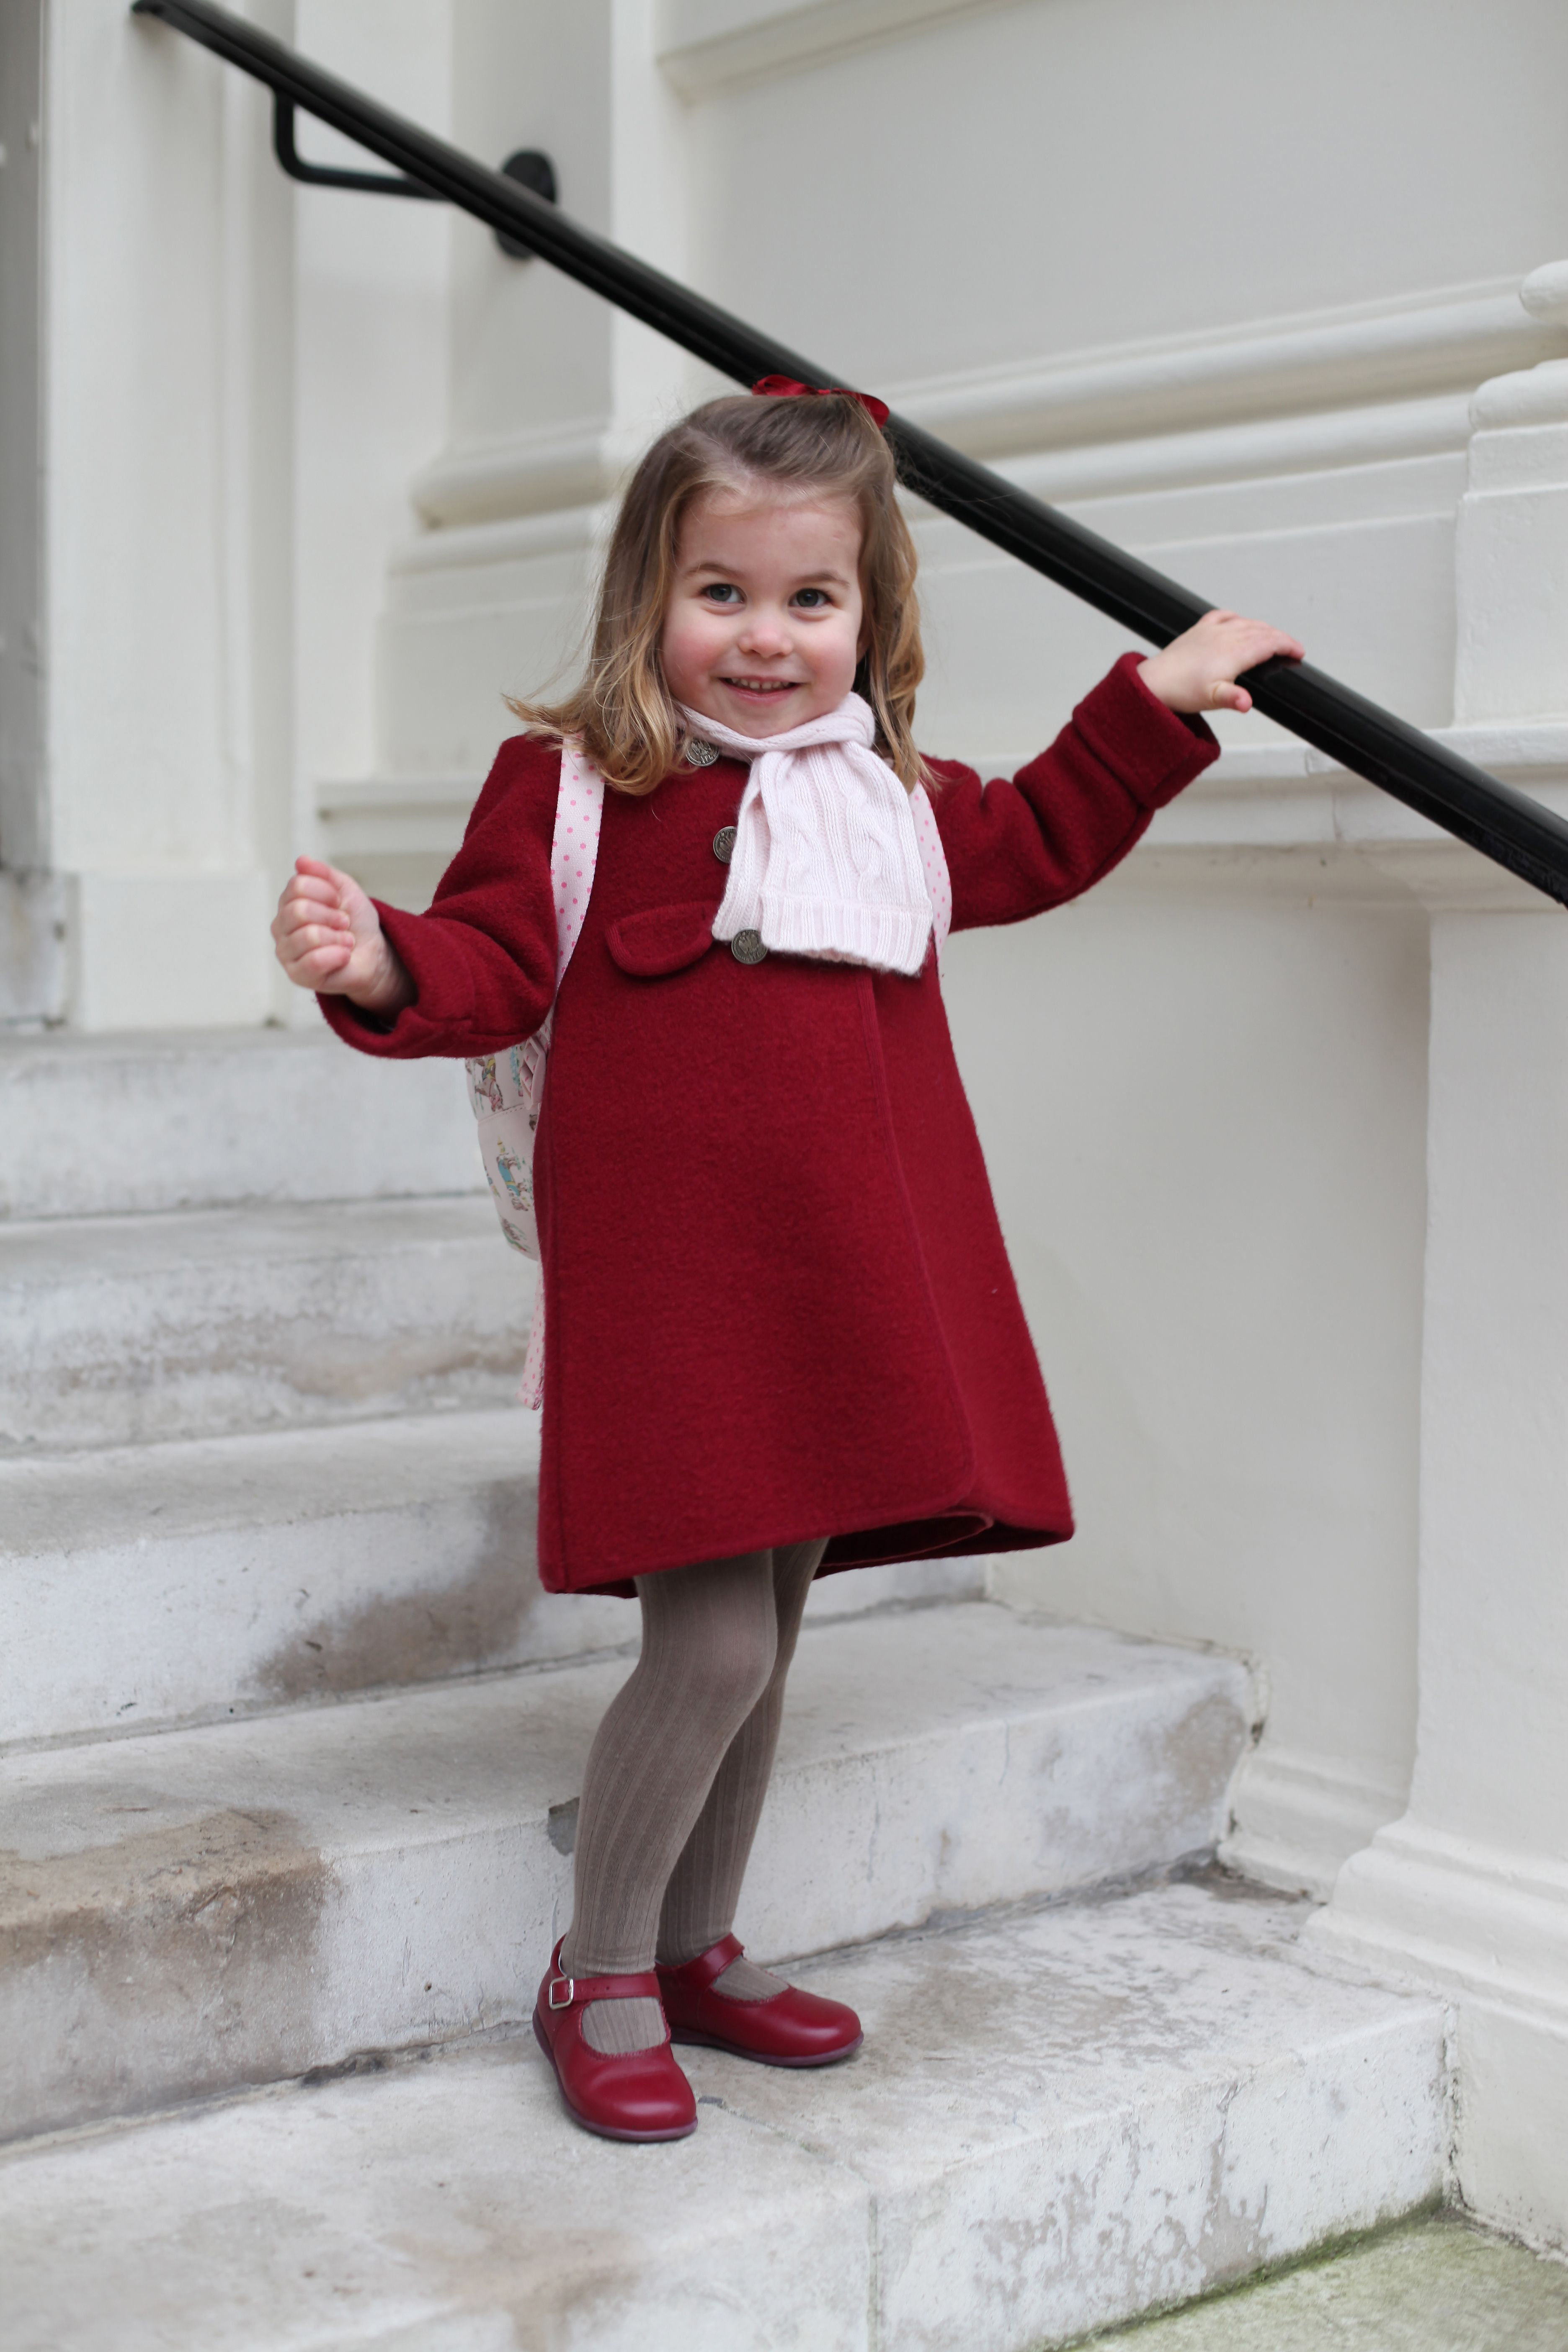 Princess Charlotte  at Kensington Palace before her first day of nursery at the Willcocks Nursery School on January 08, 2018 in London, United Kingdom. | Source: Getty Images